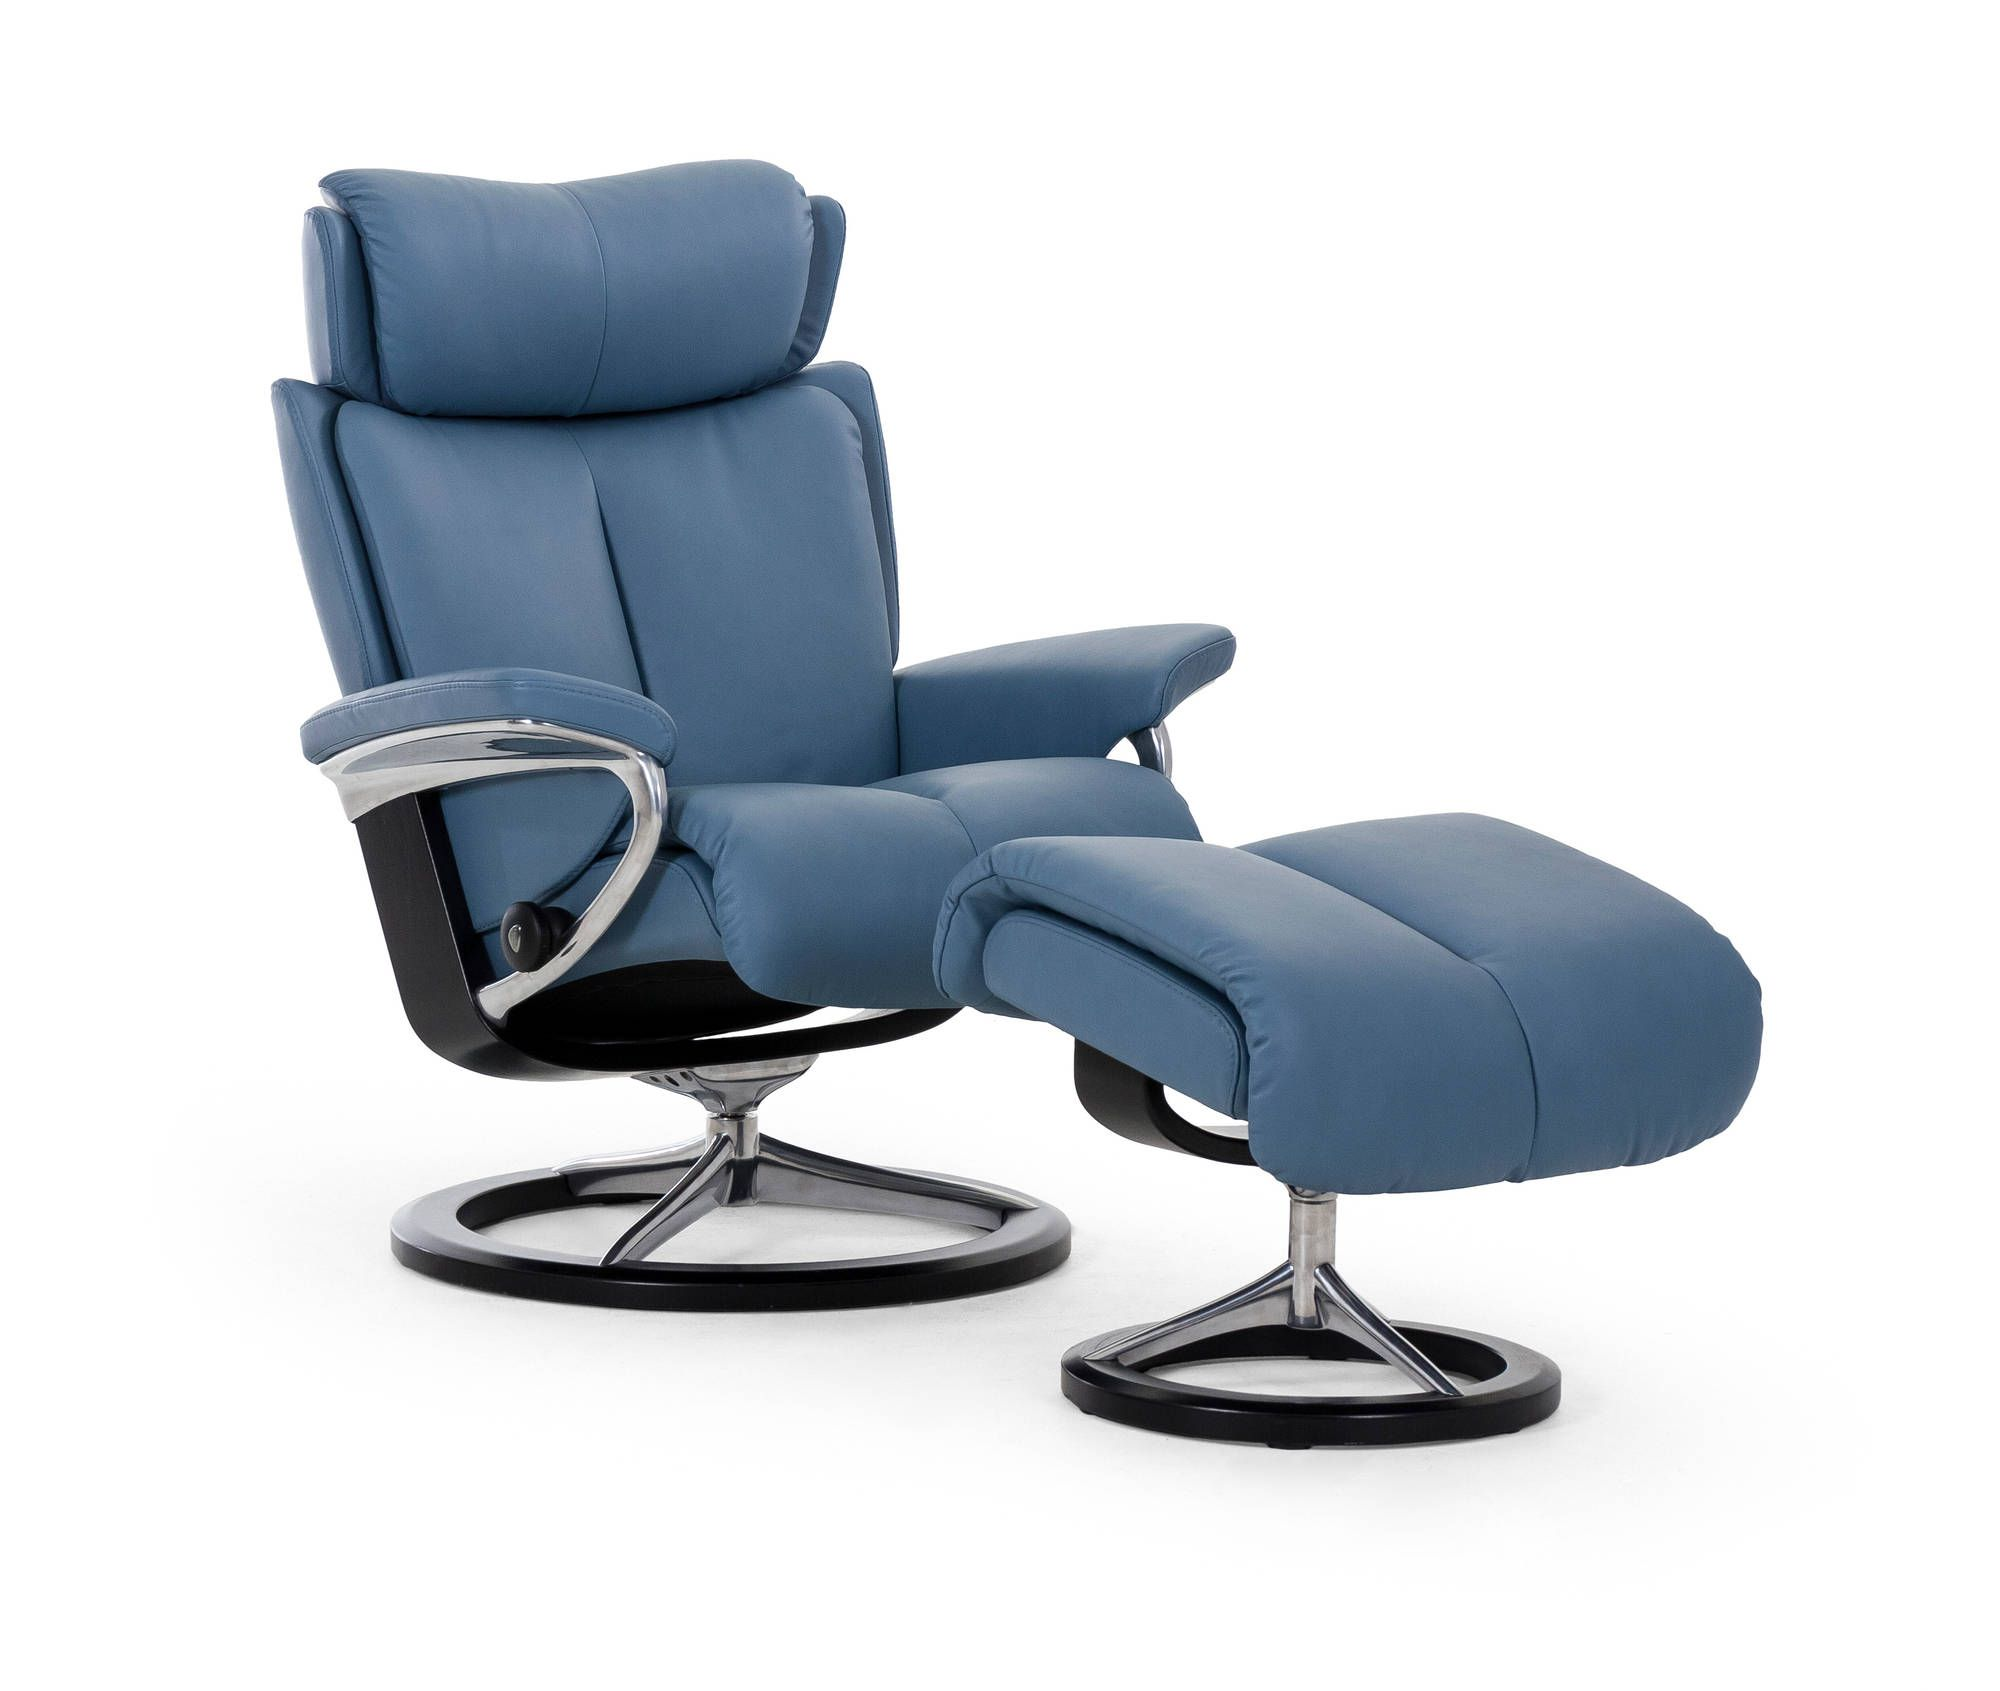 Stressless Chair Similar Black High Back Pin By Bedrooms And More On Recliners Sofas